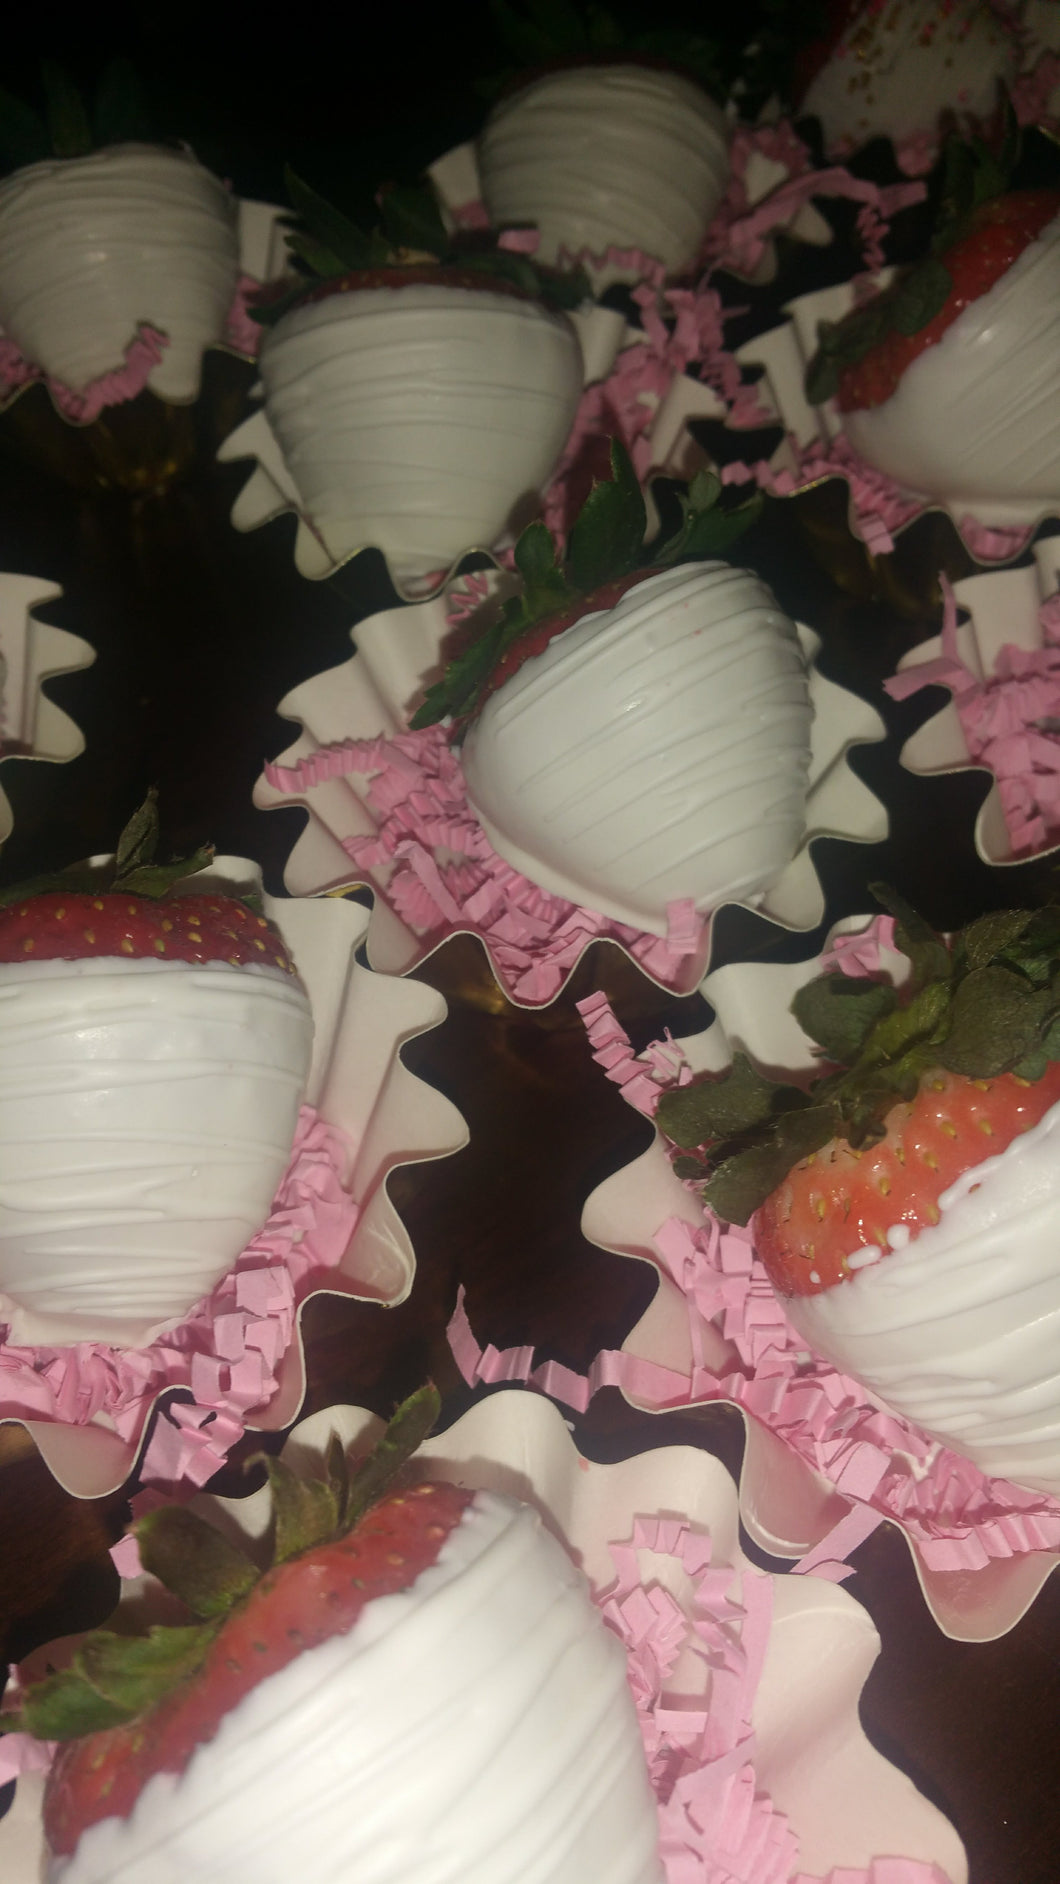 Strawberries - Chocolate Covered/Dipped (White w/ White Drizzle)